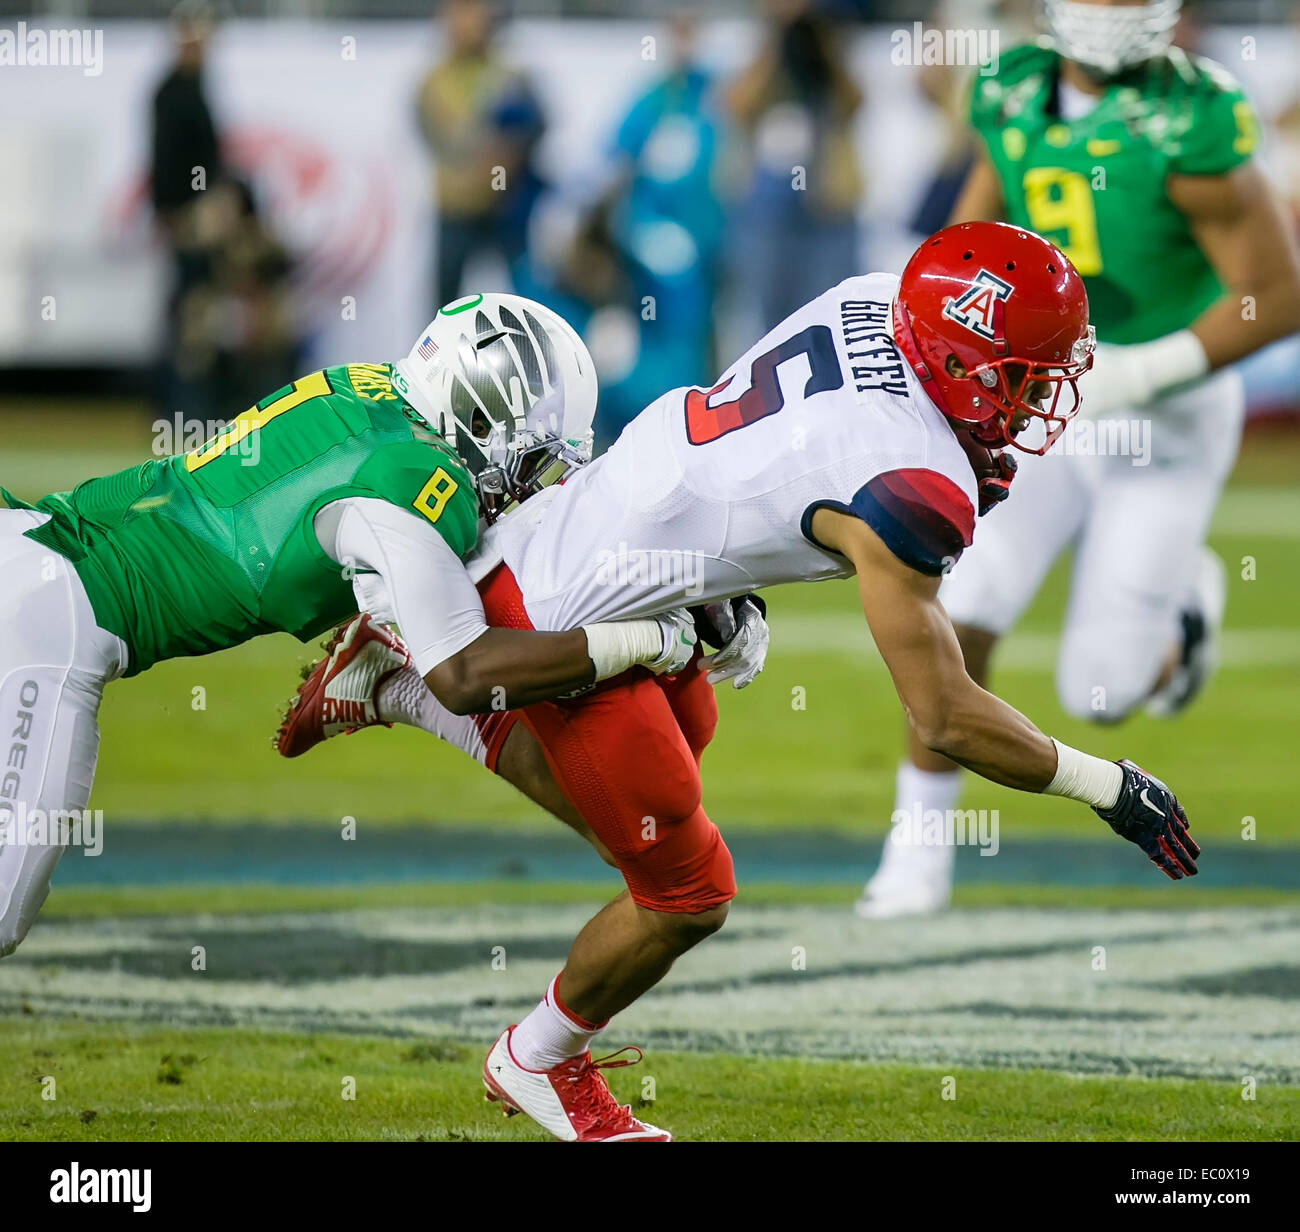 4d690f8d4 December 4, 2014: Arizona Wildcats running back Trey Griffey (5) is tackled